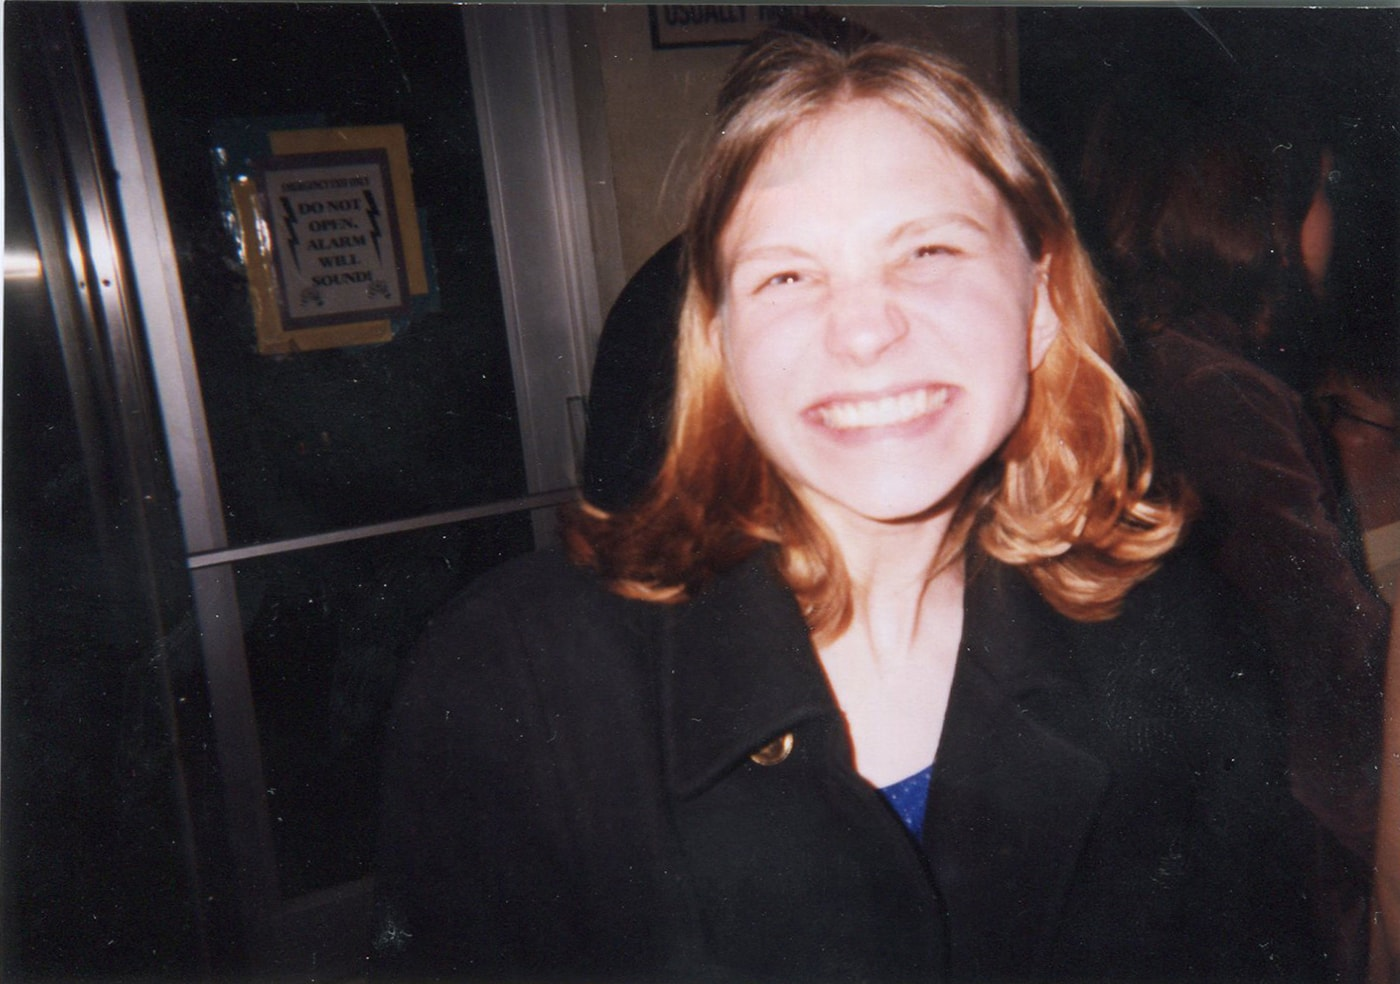 Senior year high school homecoming in 1998.